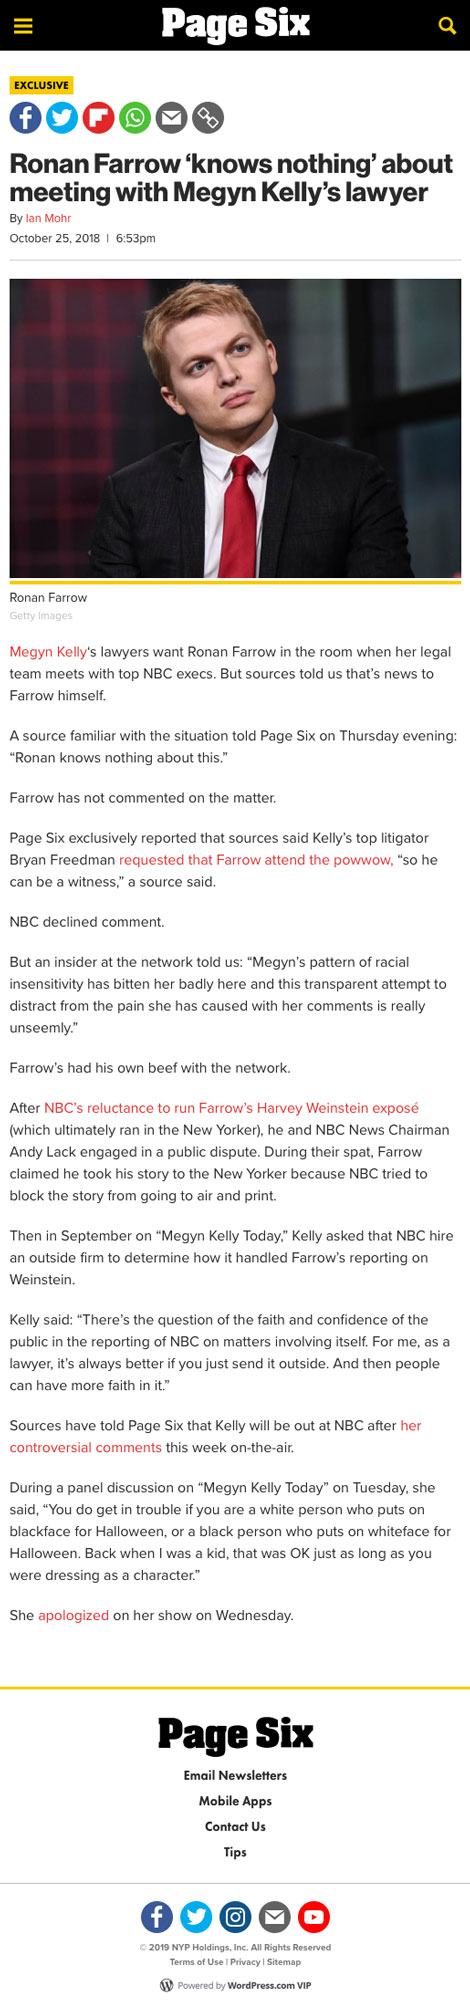 Ronan Farrow 'knows nothing' about meeting with Megyn Kelly's lawyer - article by PageSix.com